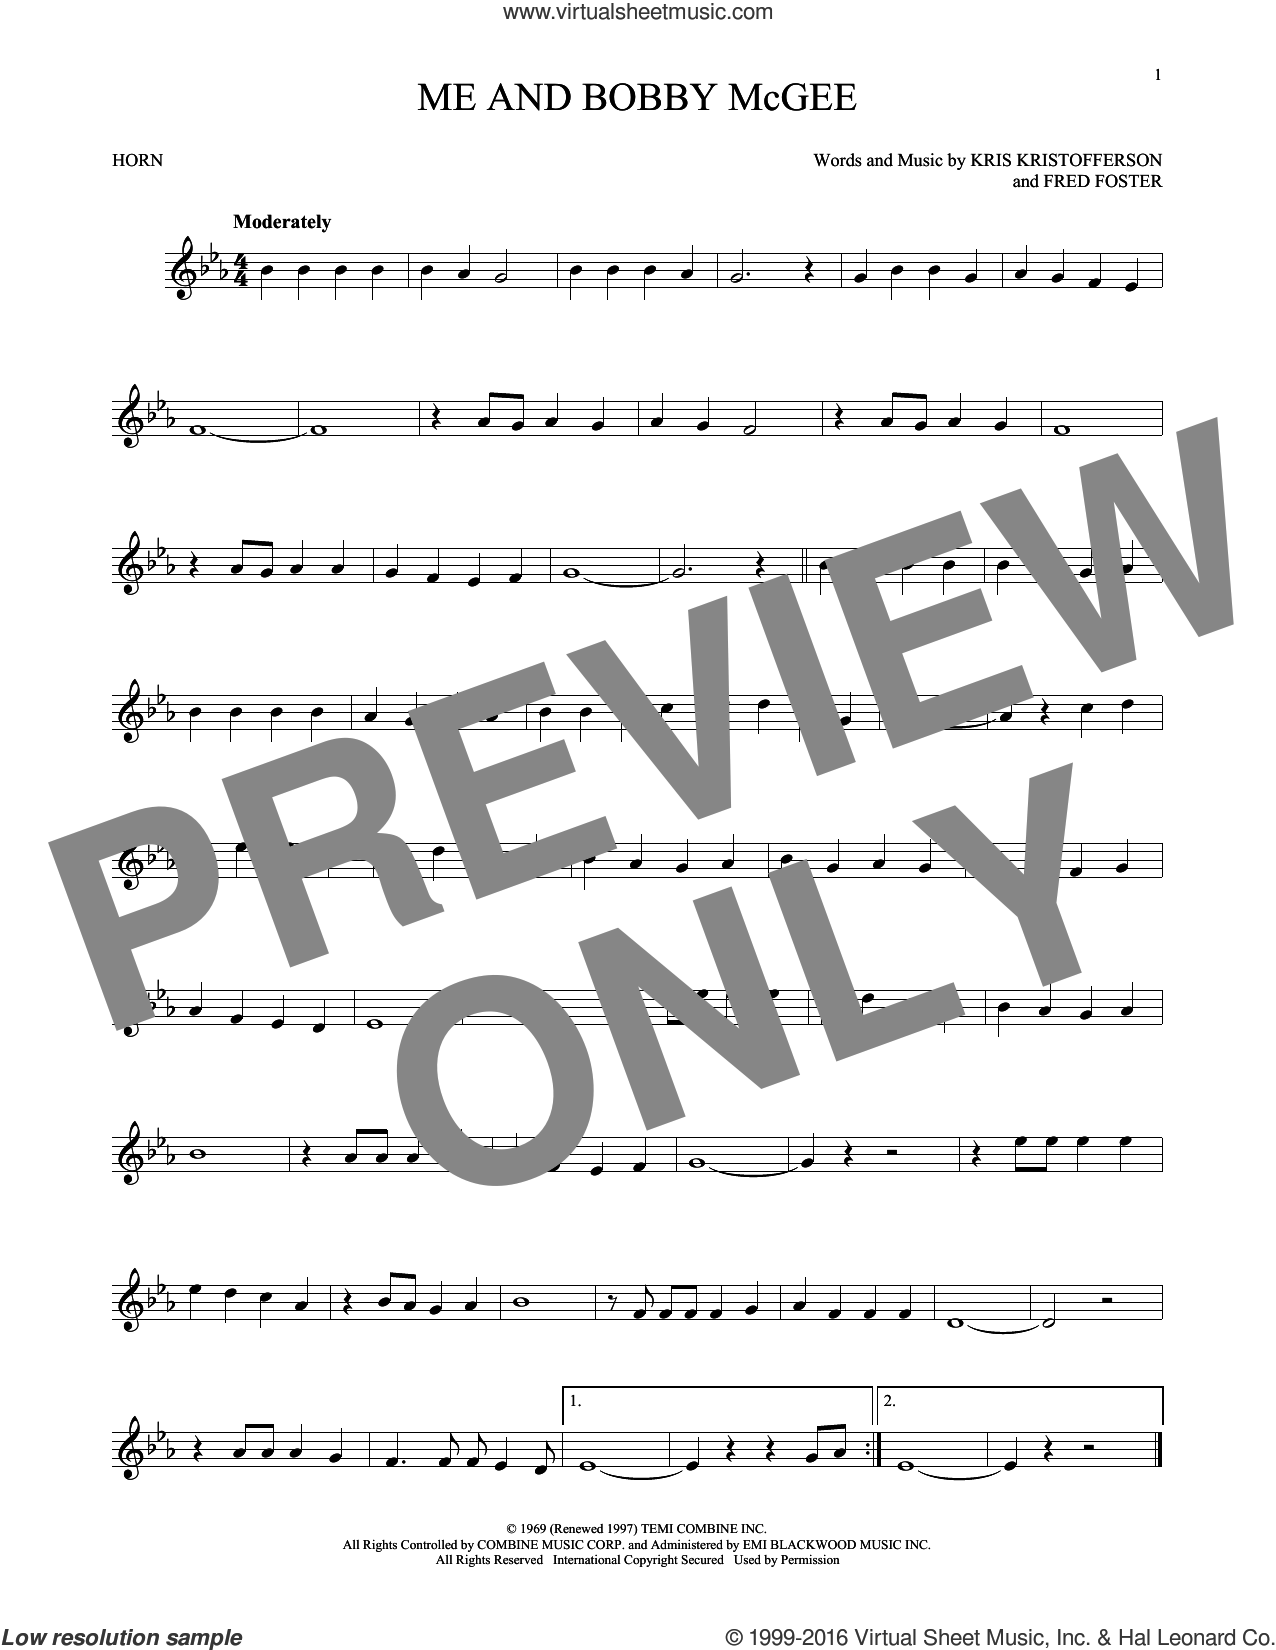 Me And Bobby McGee sheet music for horn solo by Kris Kristofferson, Janis Joplin, Roger Miller and Fred Foster, intermediate